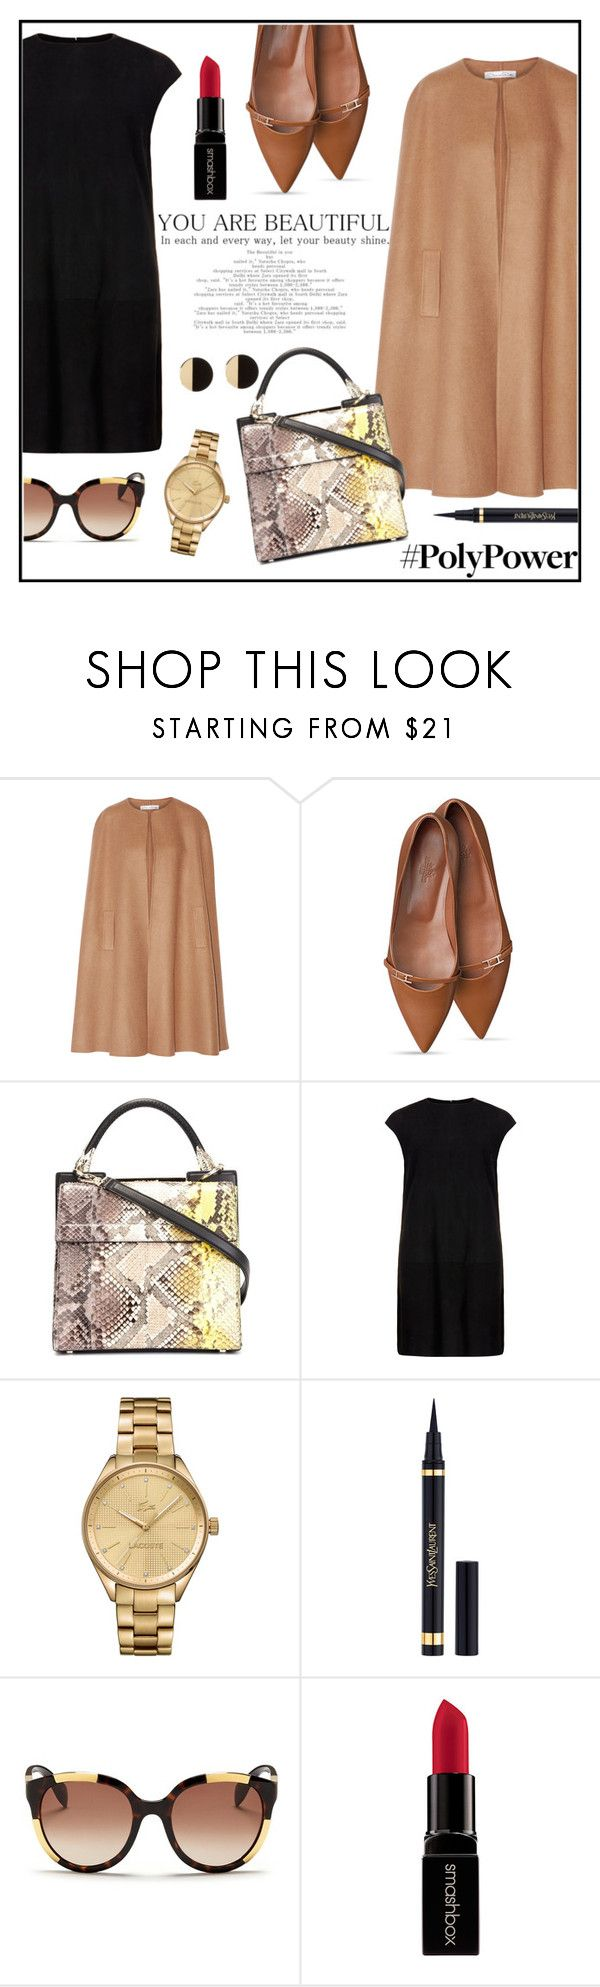 """""""My Power Outfit"""" by anchilly23 ❤ liked on Polyvore featuring Oscar de la Renta, Roberto Cavalli, MuuBaa, Lacoste, Alexander McQueen and Smashbox"""